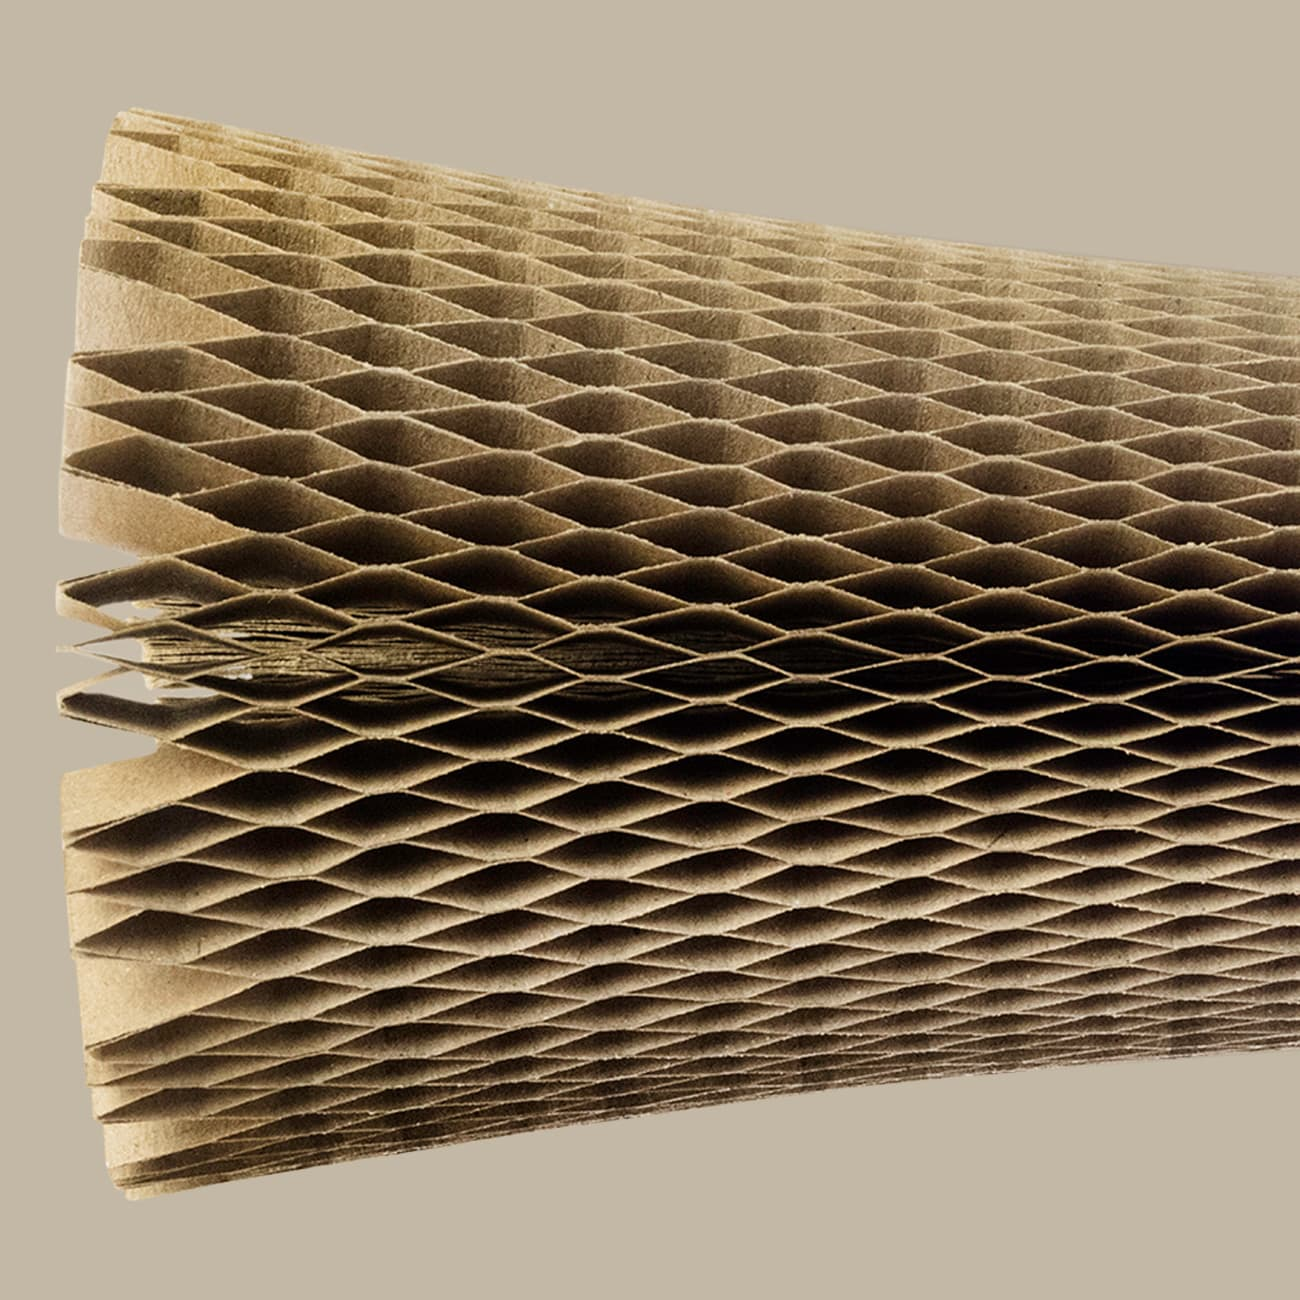 Dufaylite, a world leader in the design and manufacture of paper honeycomb and board